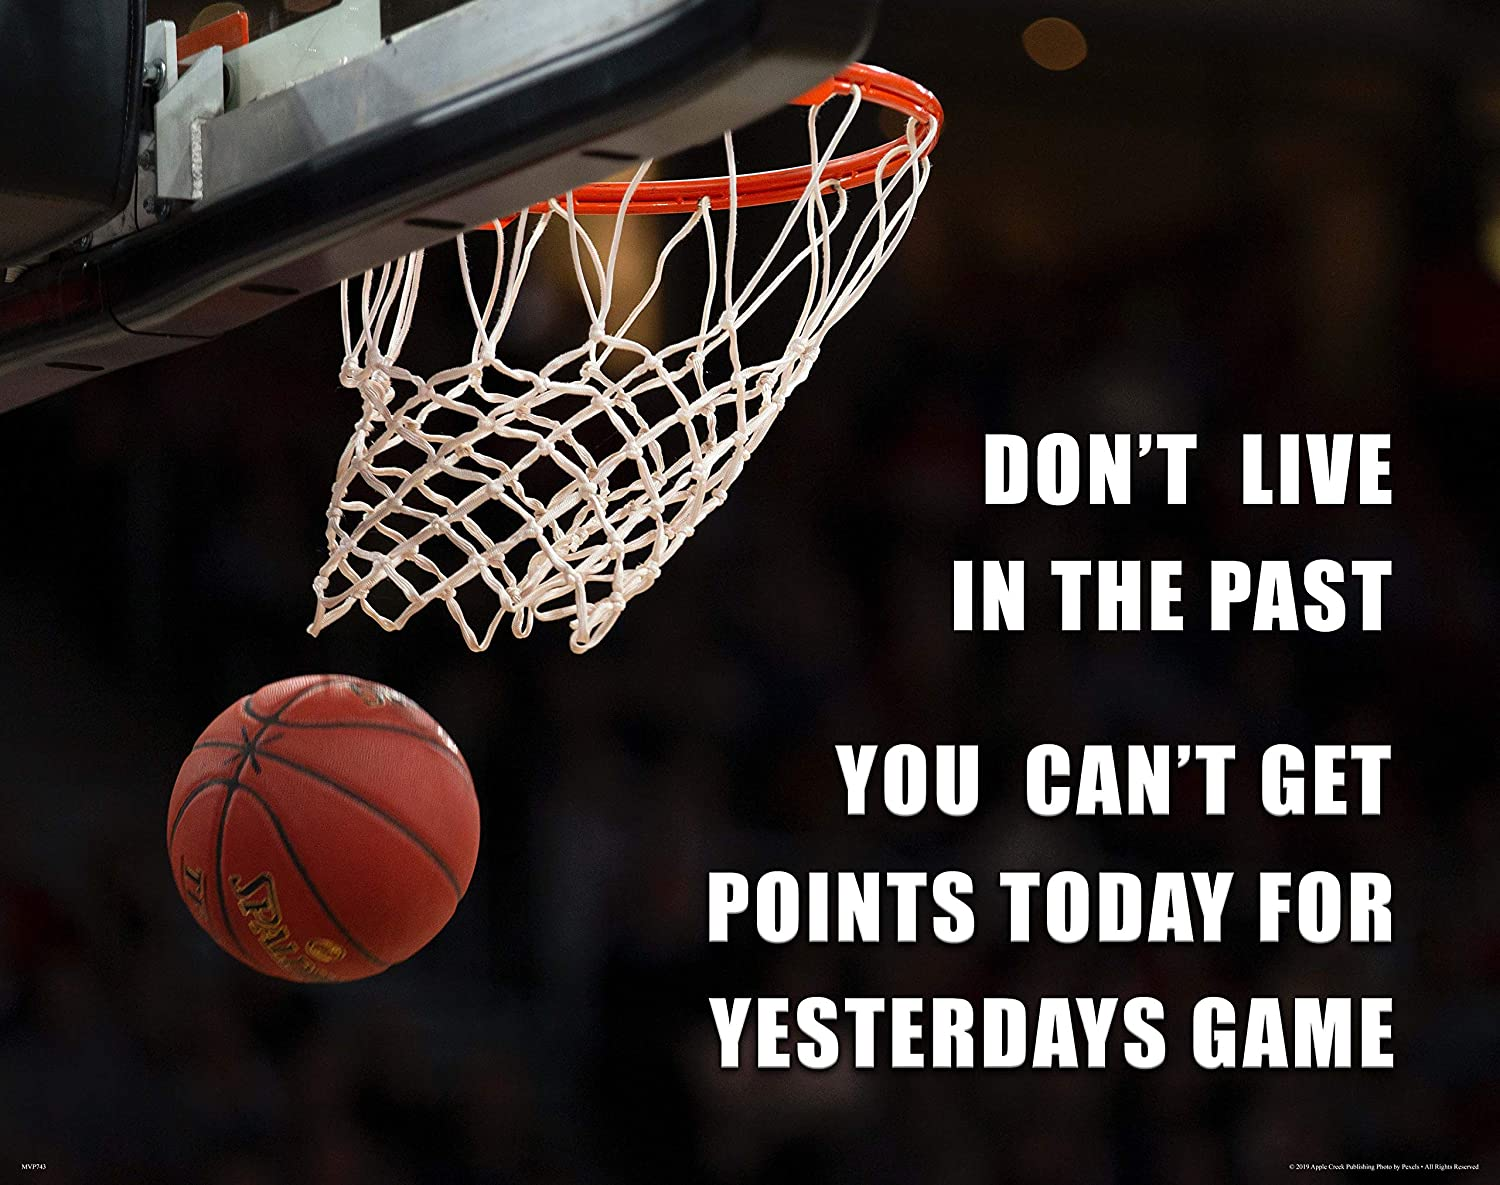 Apple Creek Basketball Quote Motivational Poster Art Print 11x14 School Classroom College Wall Decor Pictures